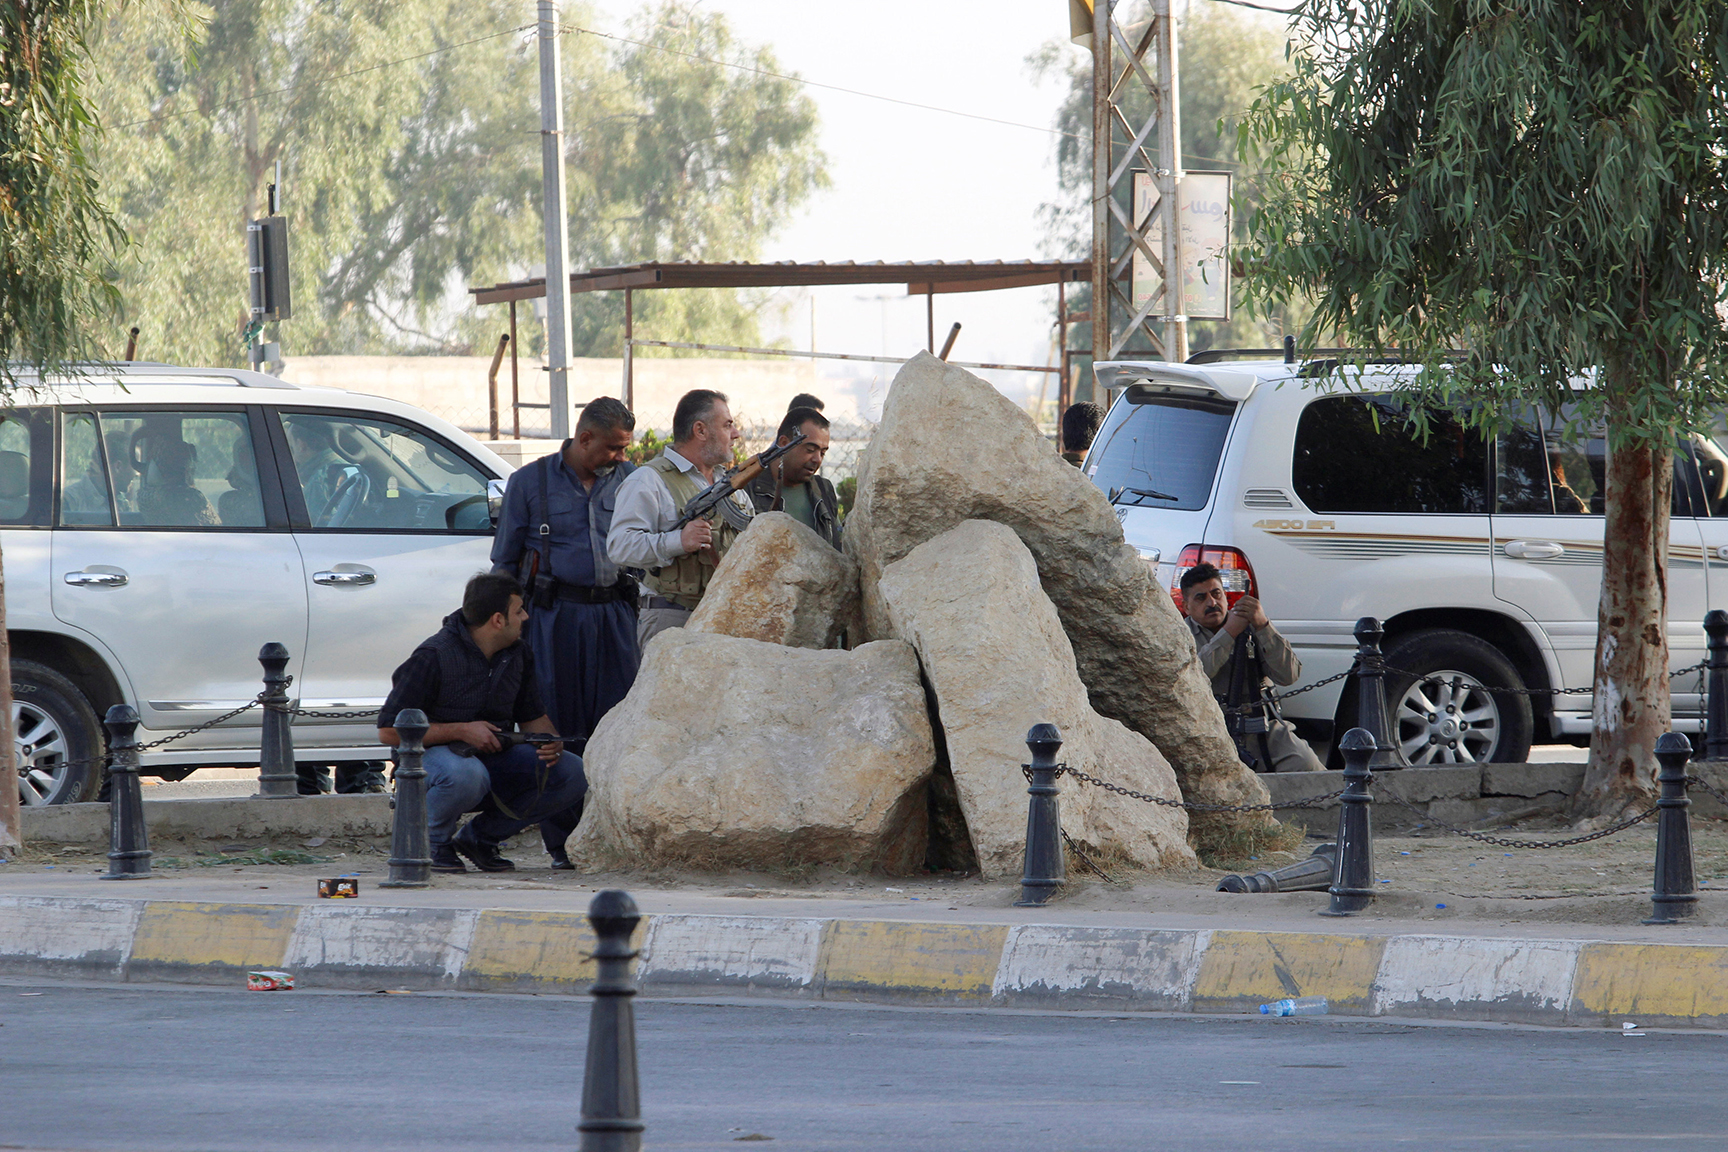 Peshmerga forces stand behind rocks at a site of an attack by Islamic State militants in Kirkuk